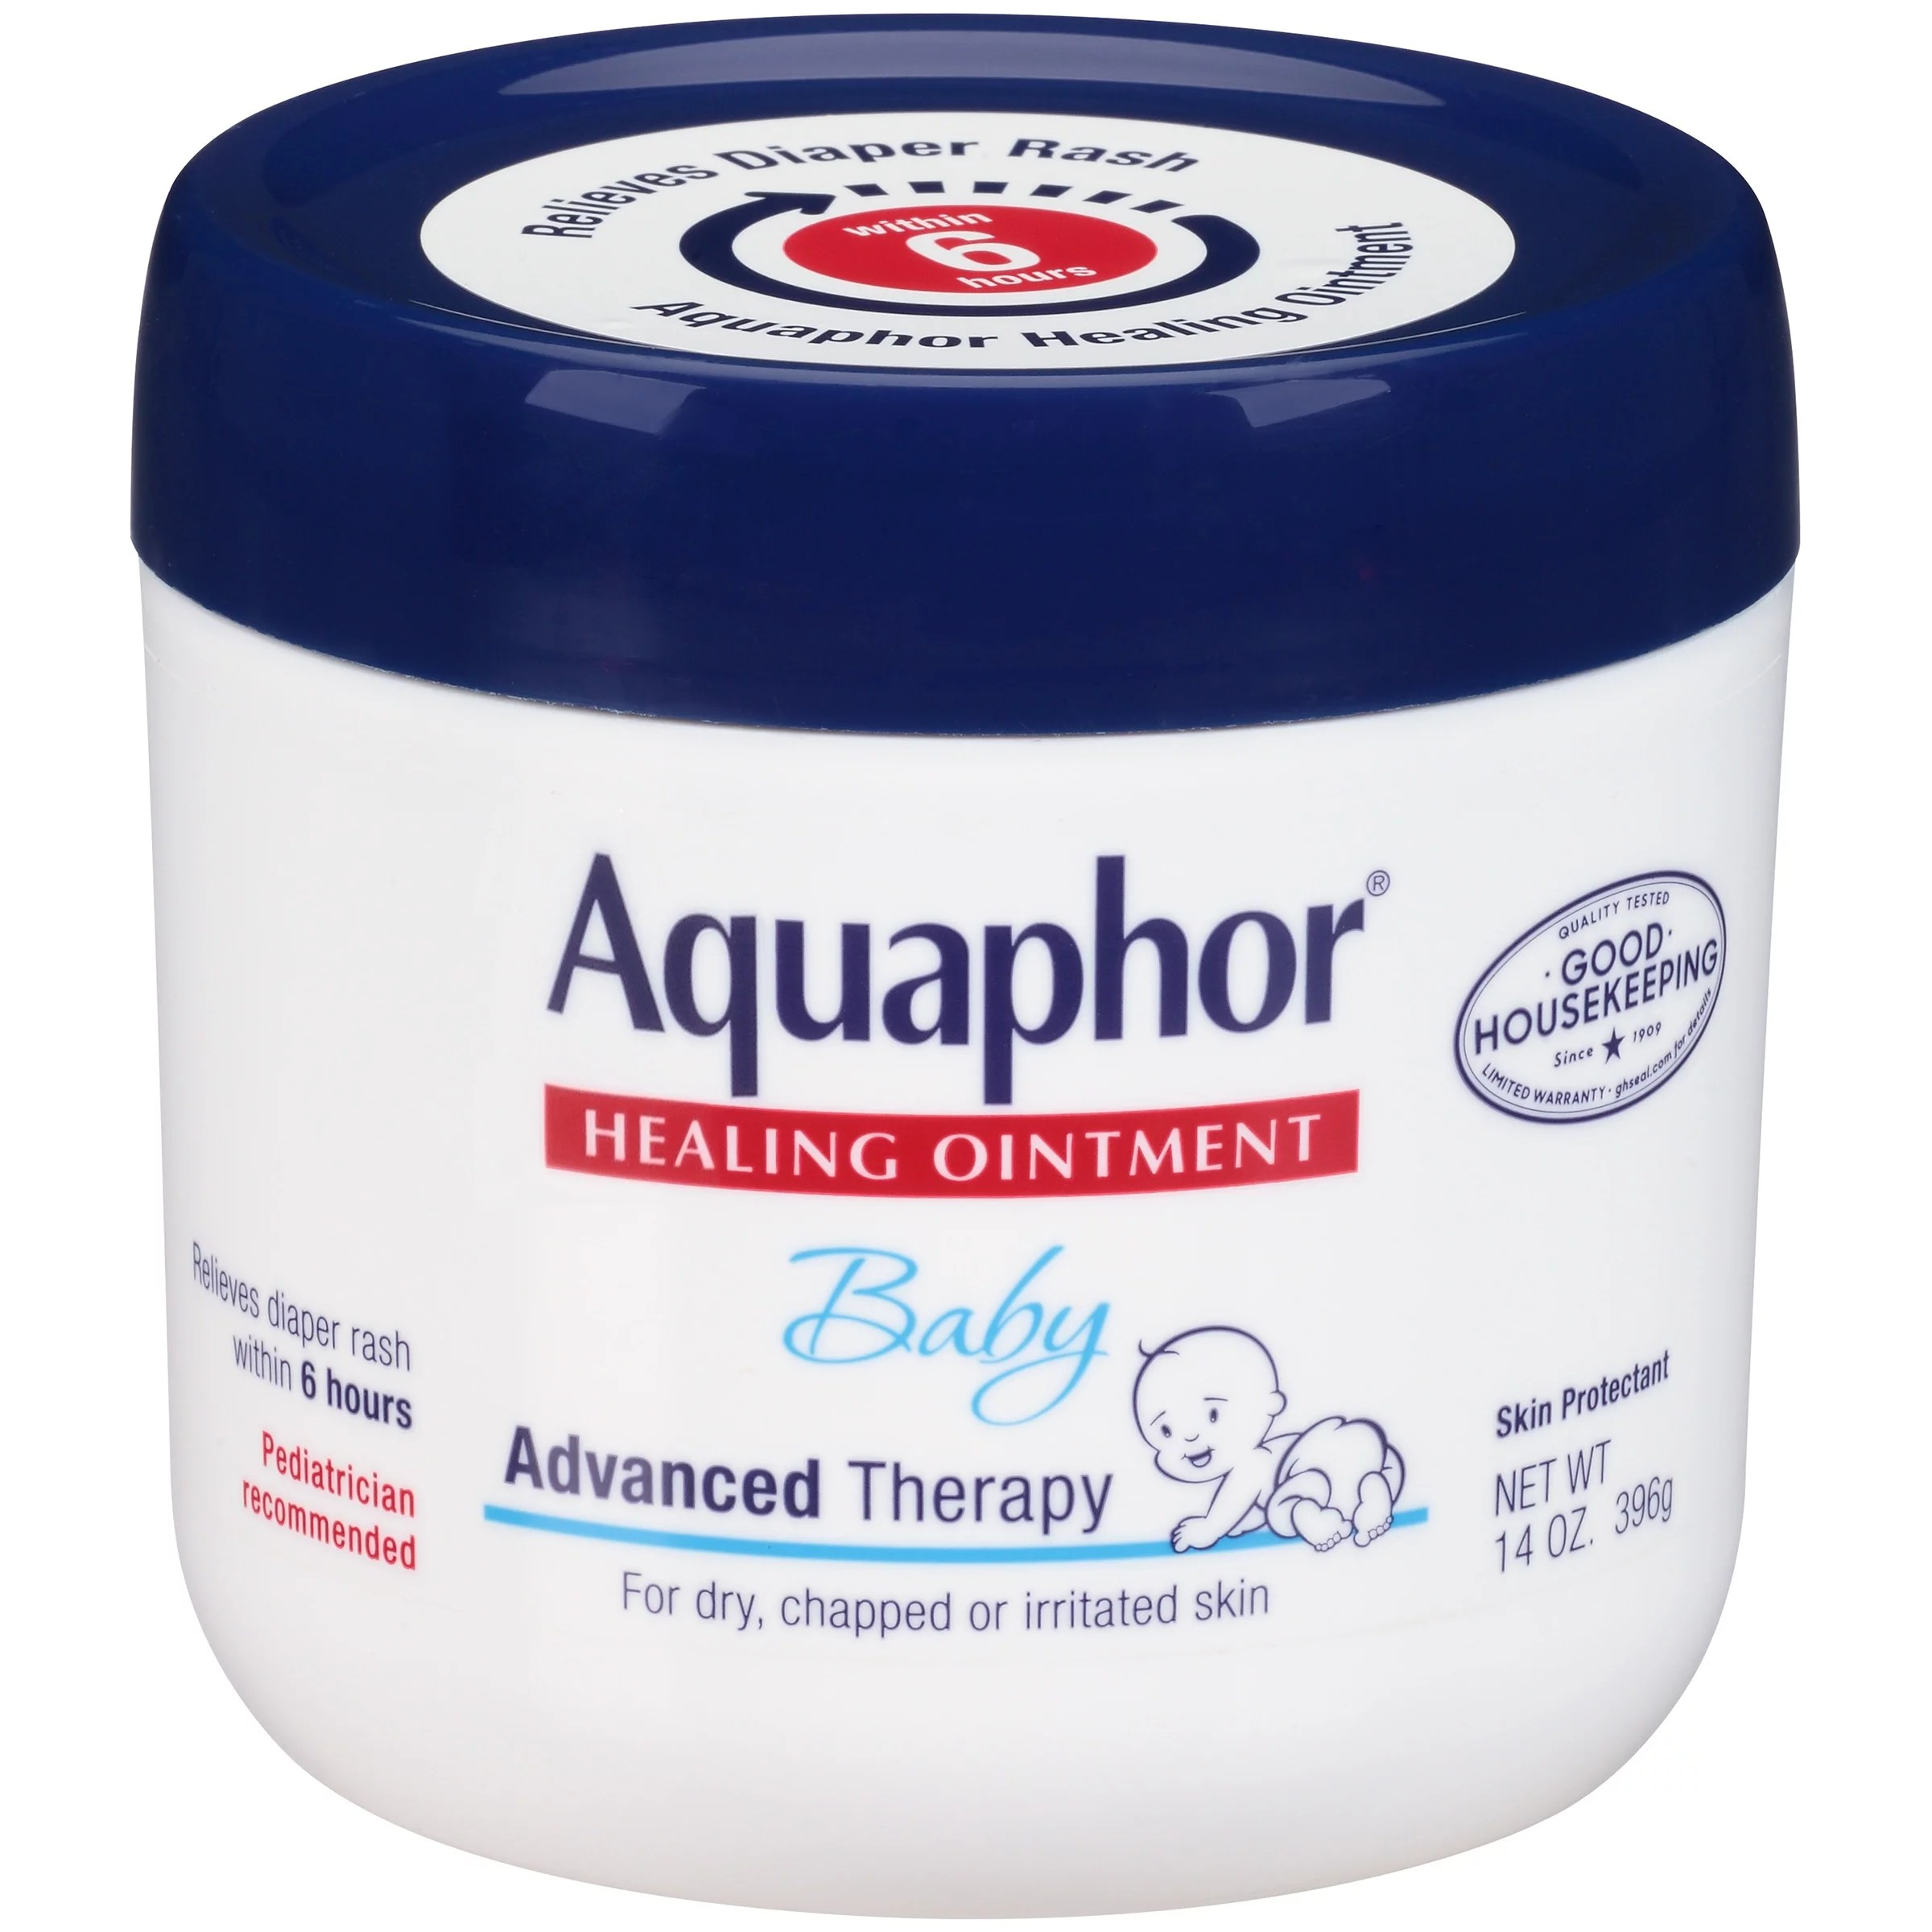 Aquaphor Baby Advanced Therapy Healing Ointment Skin ...